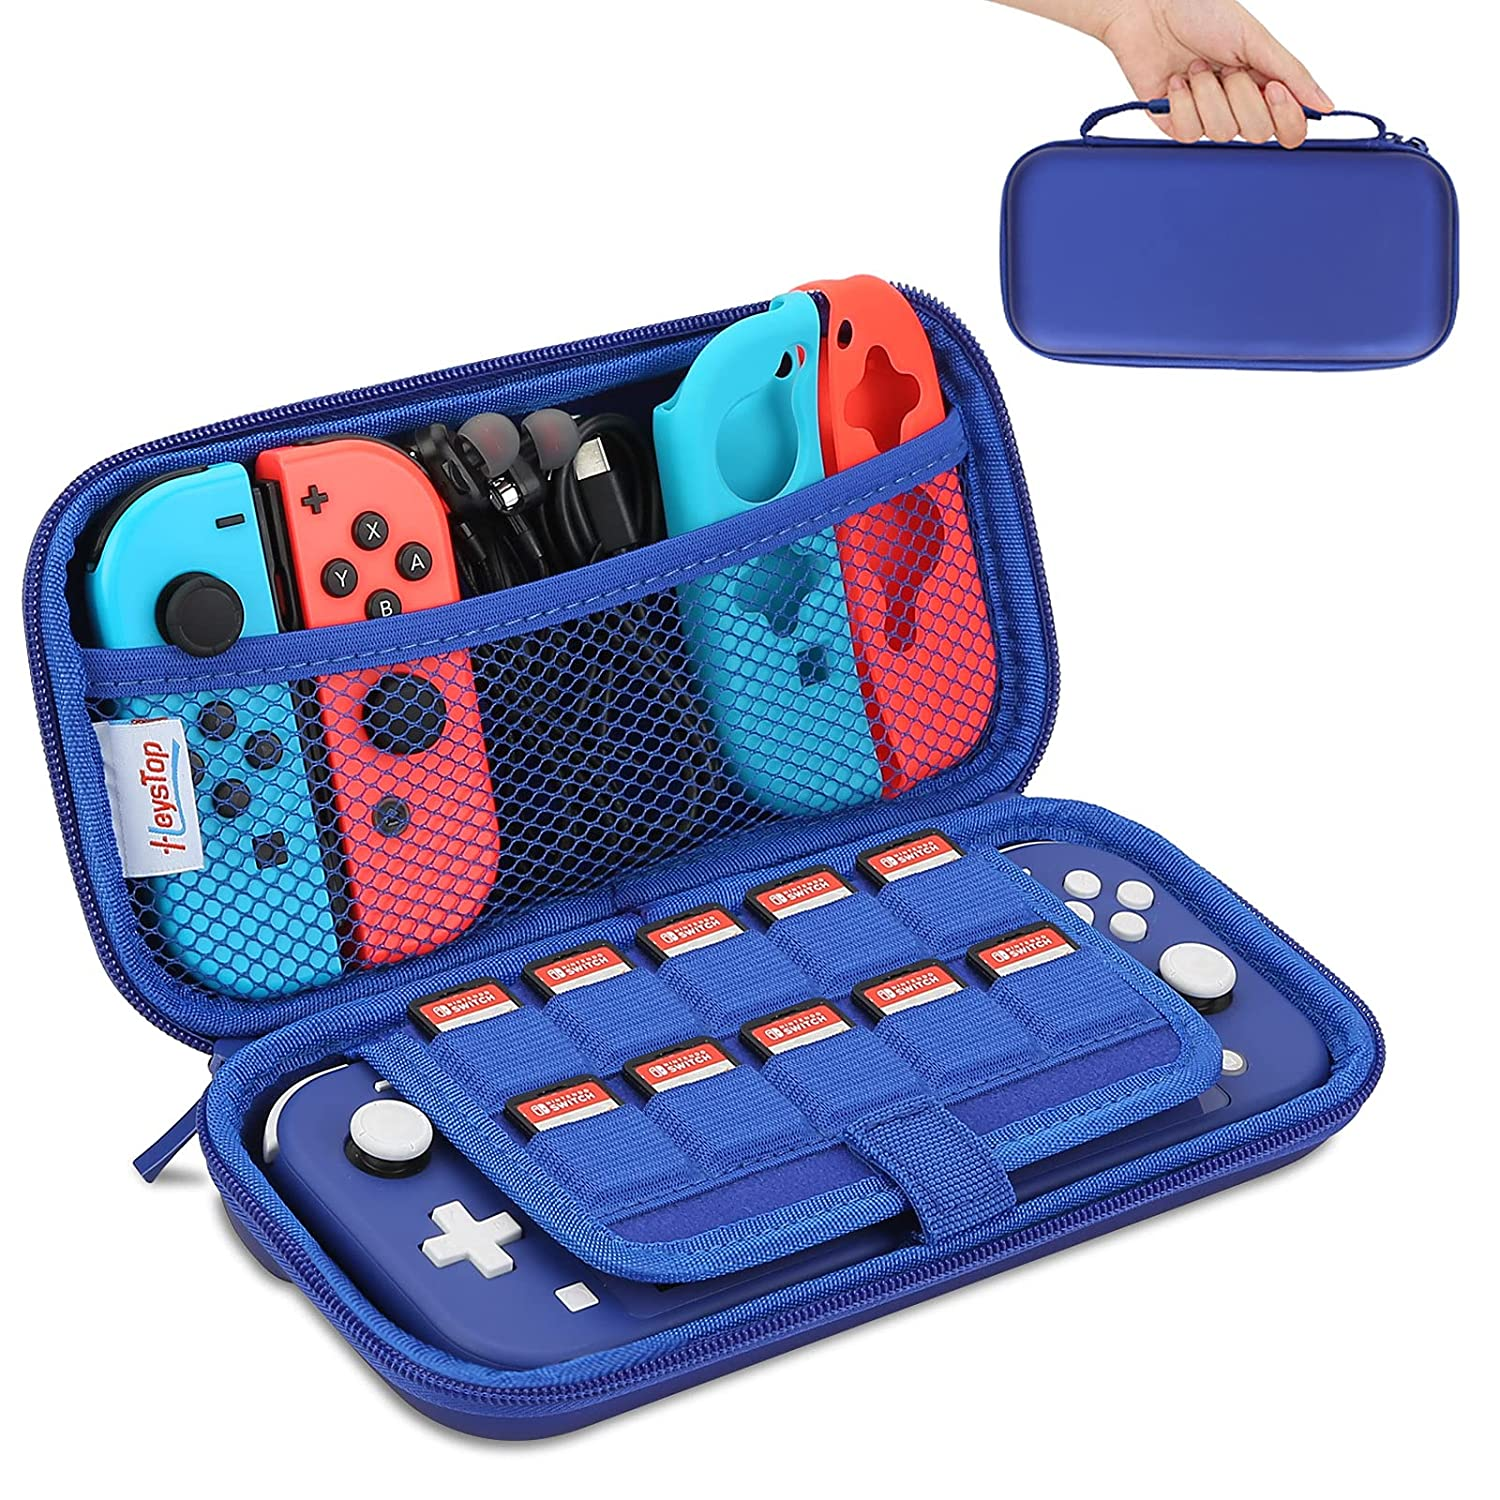 HEYSTOP Carrying Case New sales Finally popular brand Compatible with Lite Porta Switch Nintendo